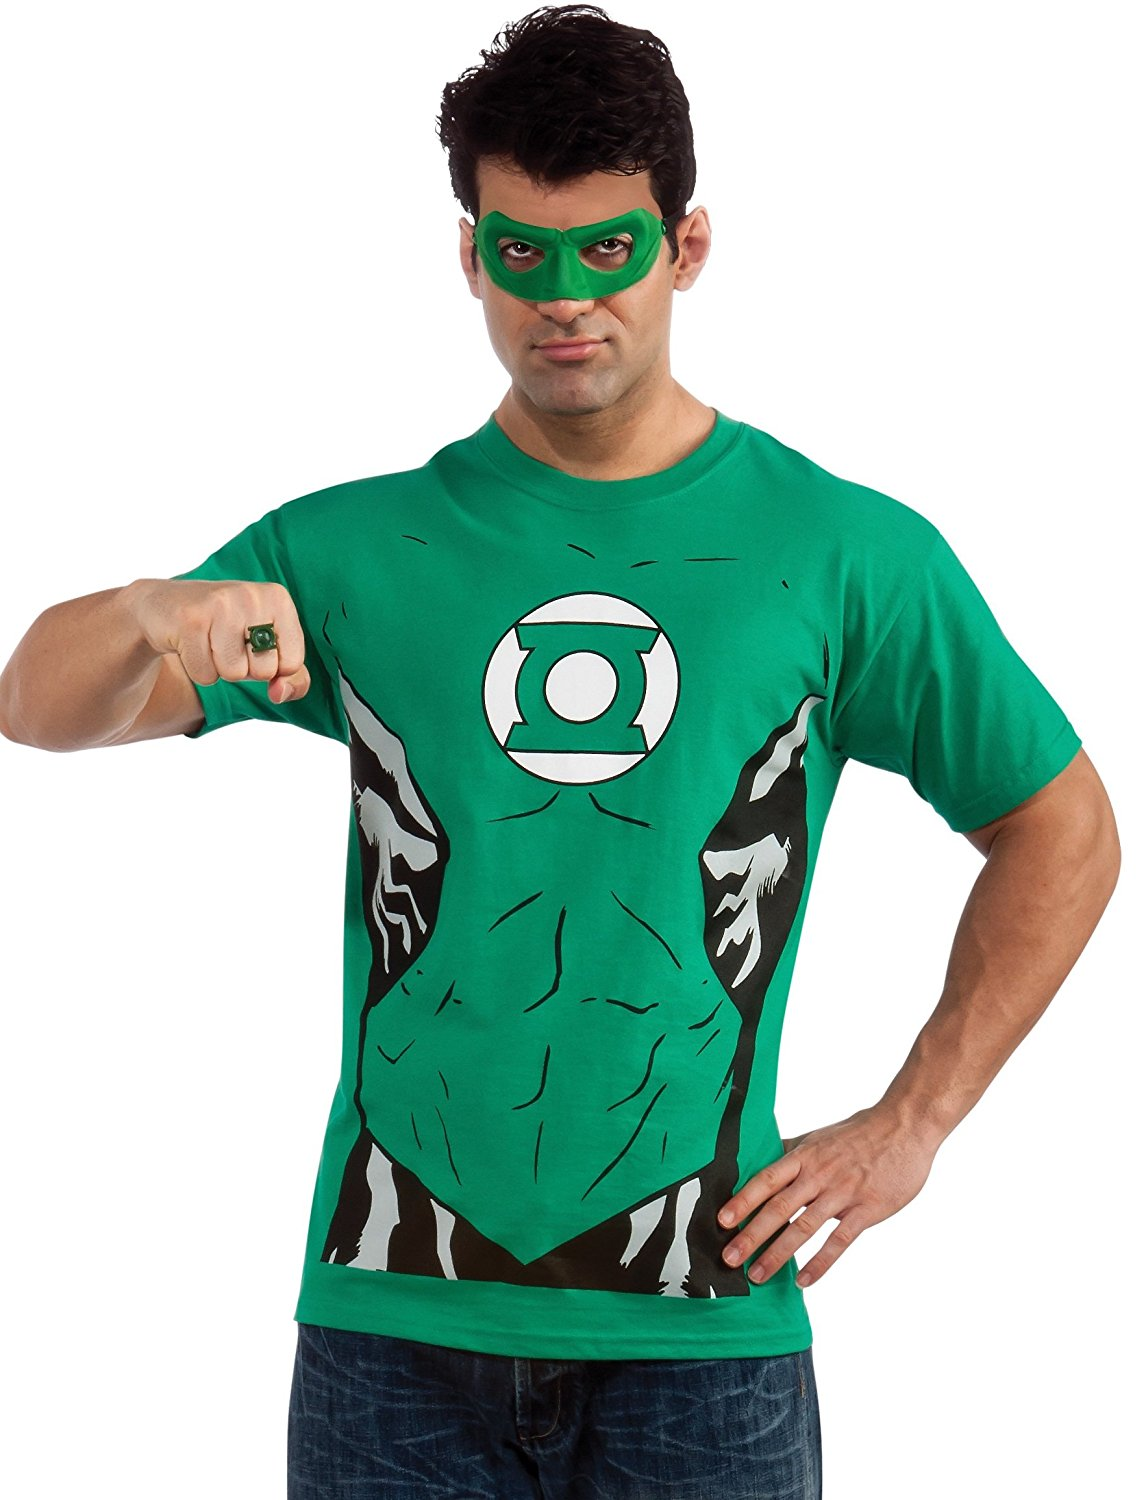 Superhero Costume Character T-Shirts for an Easy Halloween Costume